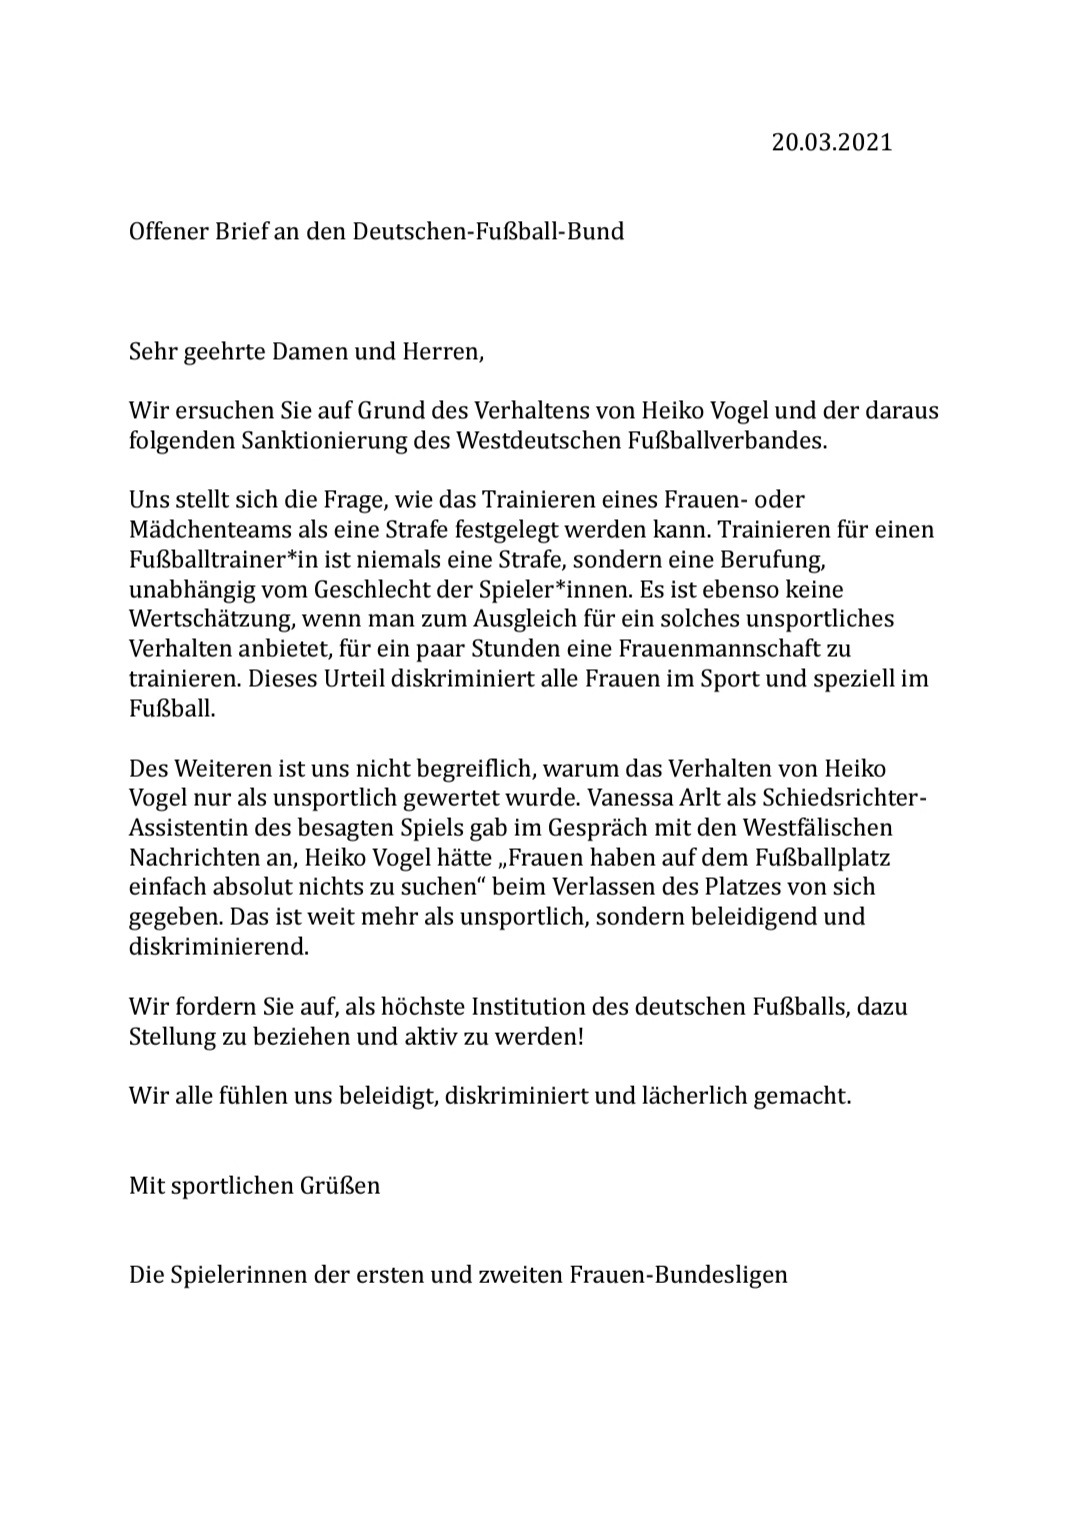 Letter to the DFB signed by all players of the 1st and 2nd Division Women's Bundesliga.